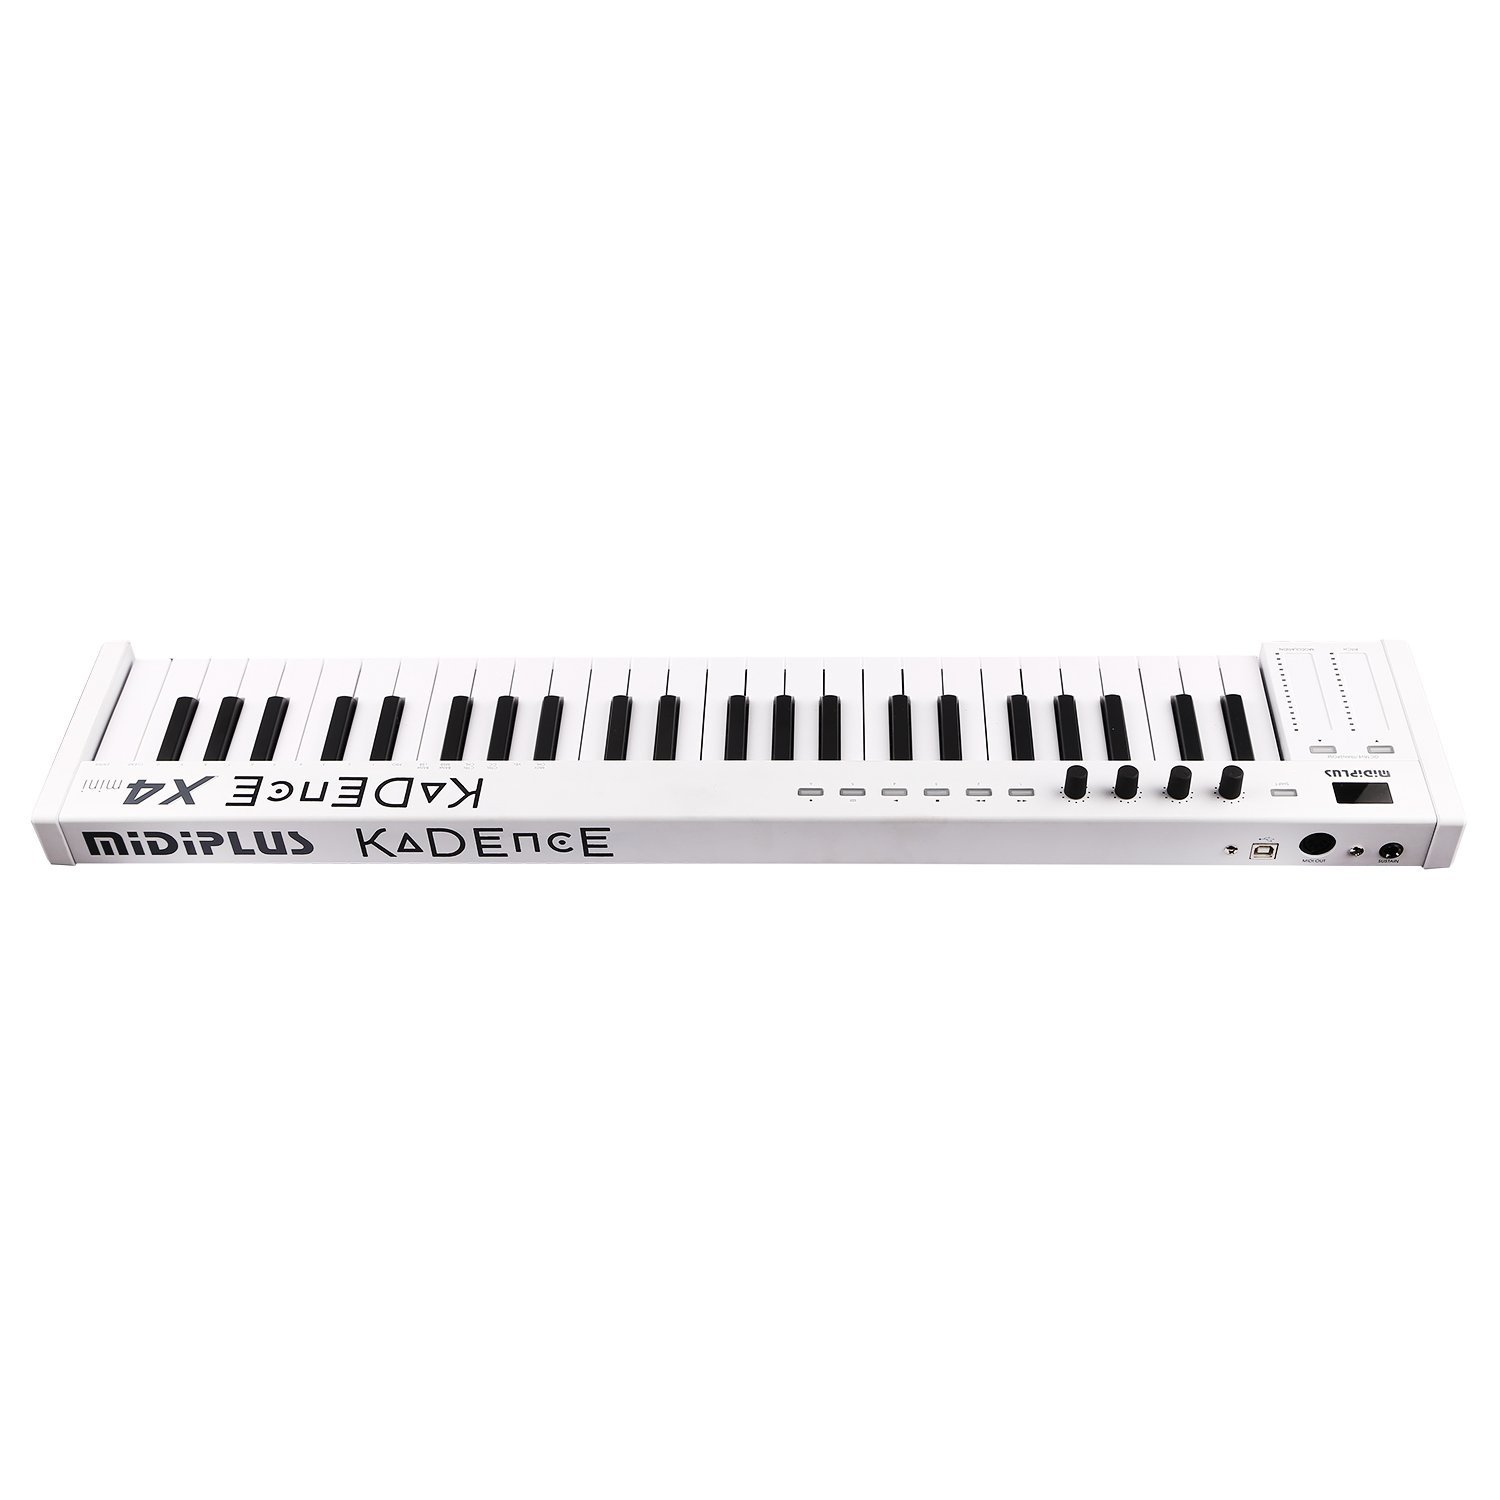 buy kadence midiplus x4 49key midi keyboard controller or check online price in india euphonycart. Black Bedroom Furniture Sets. Home Design Ideas